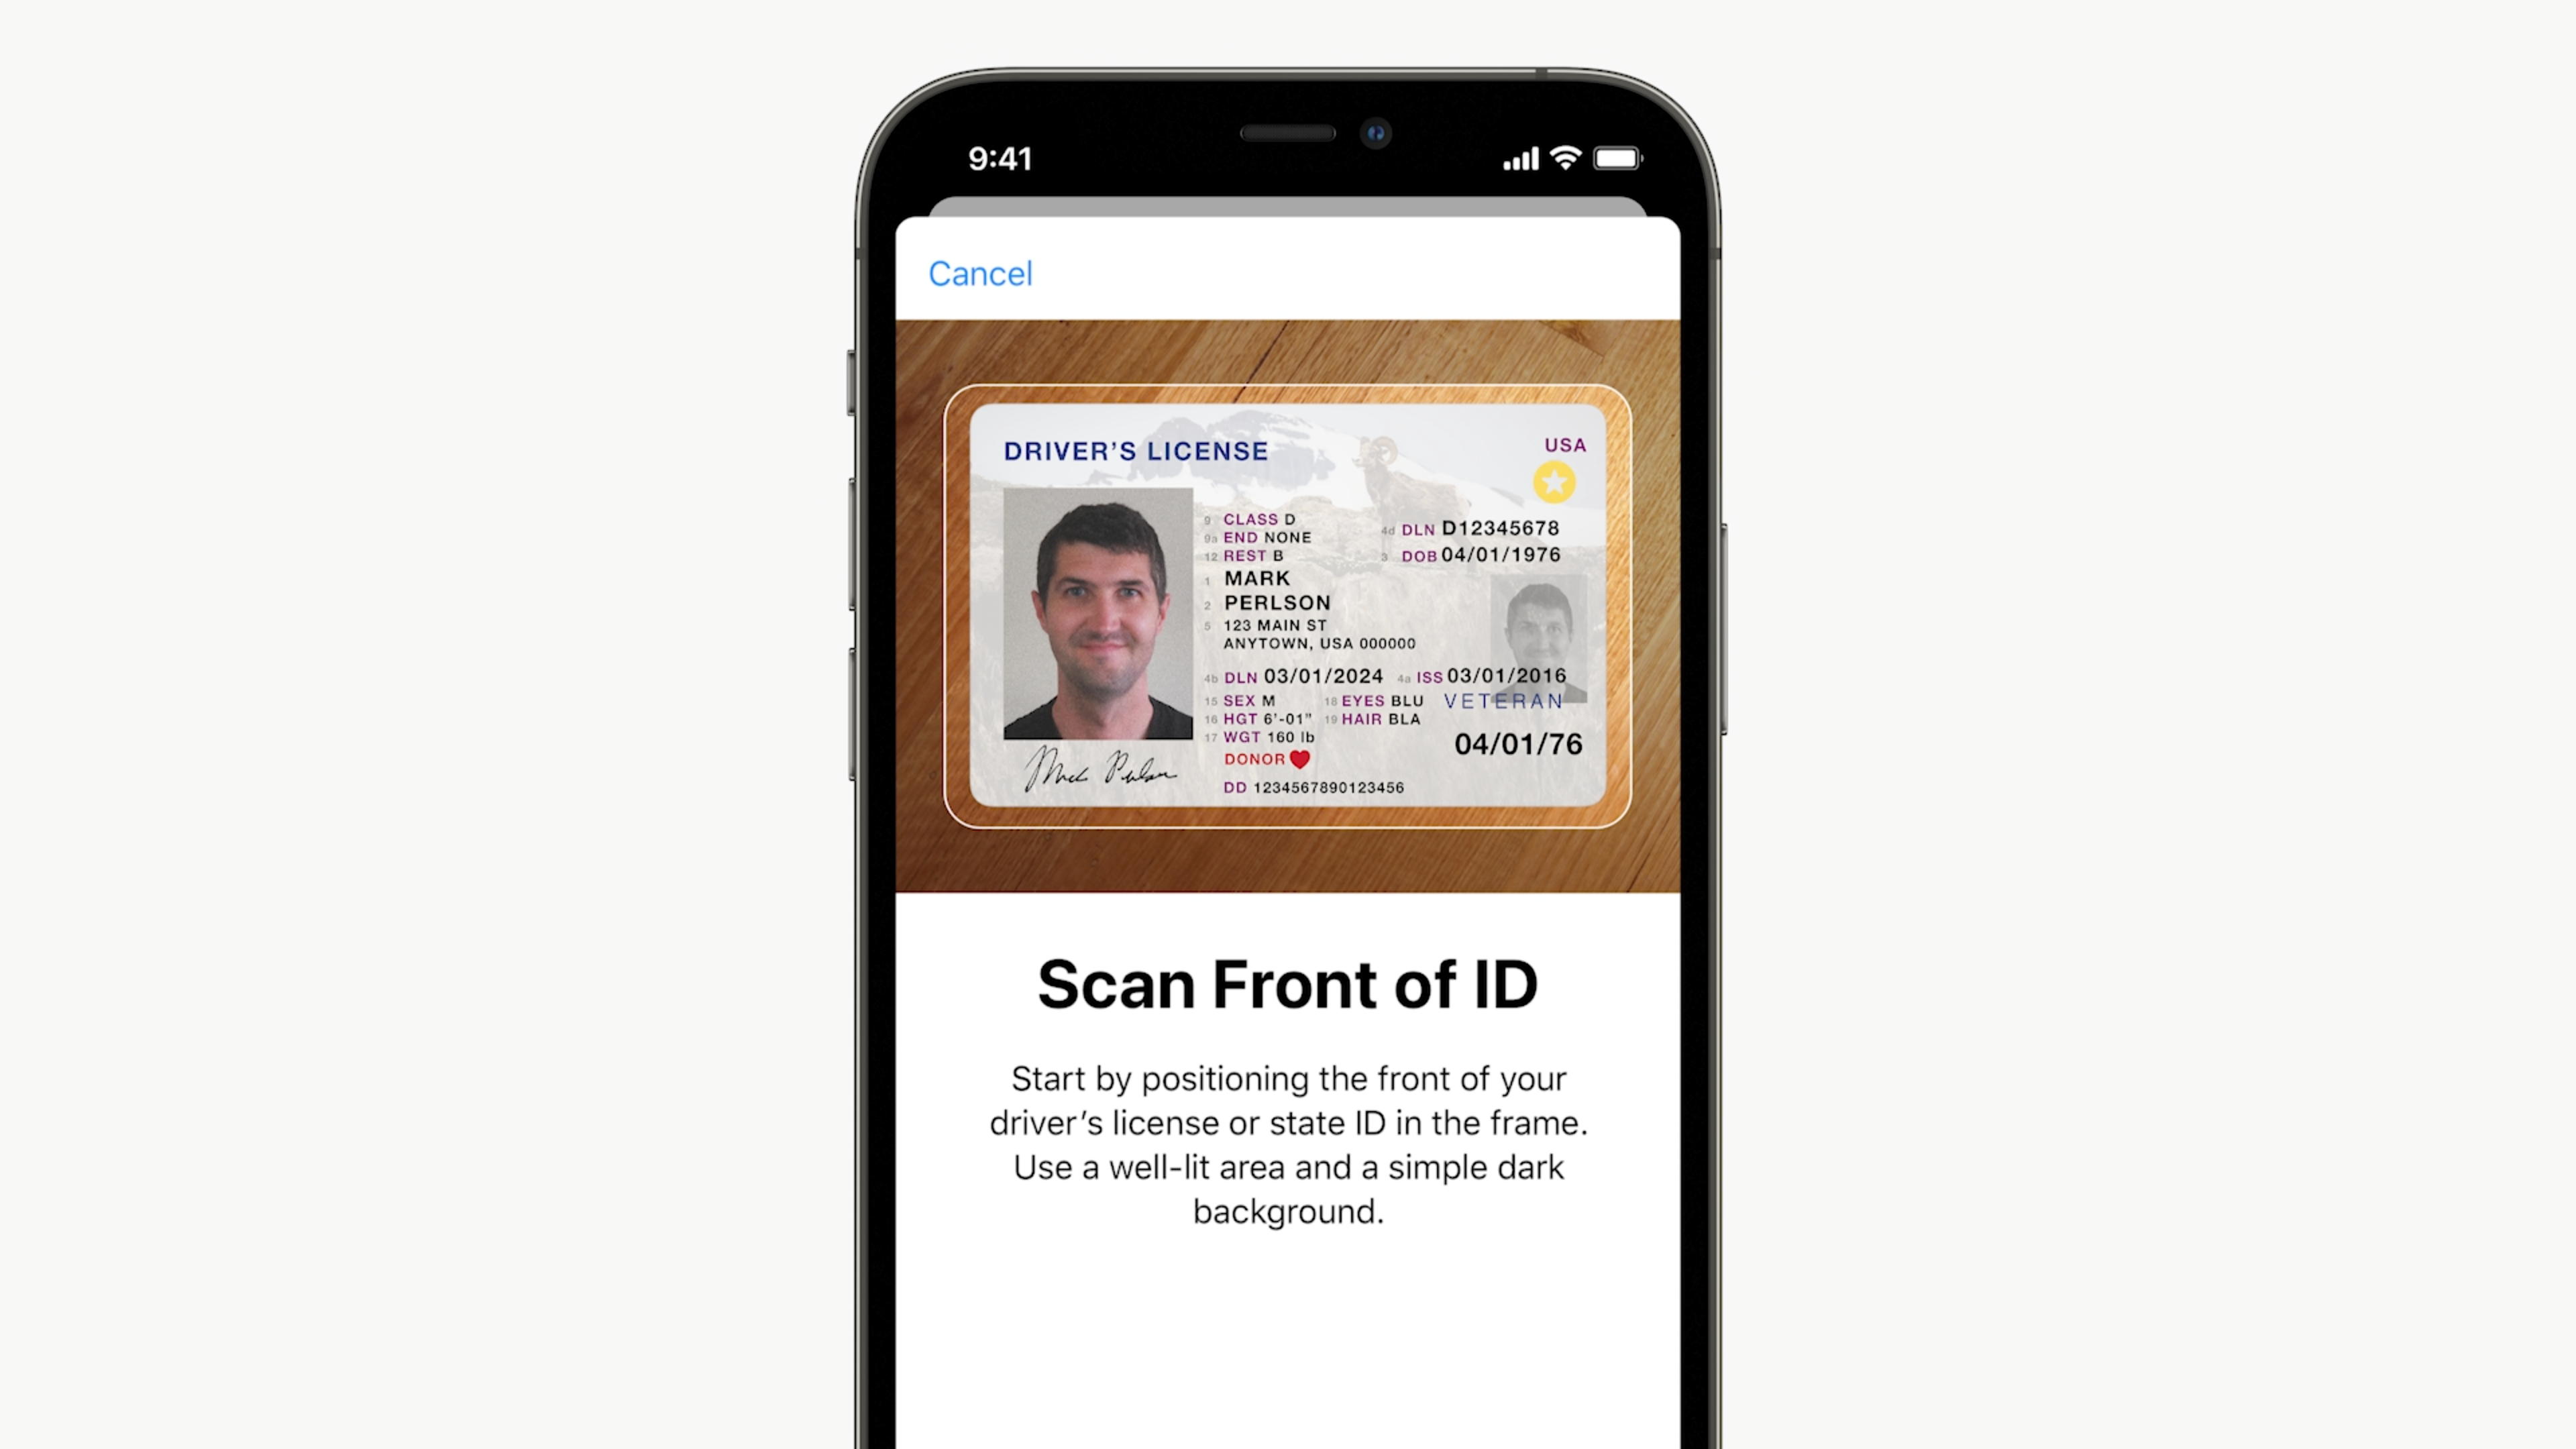 Apple Wallet iOS 15 driver's license